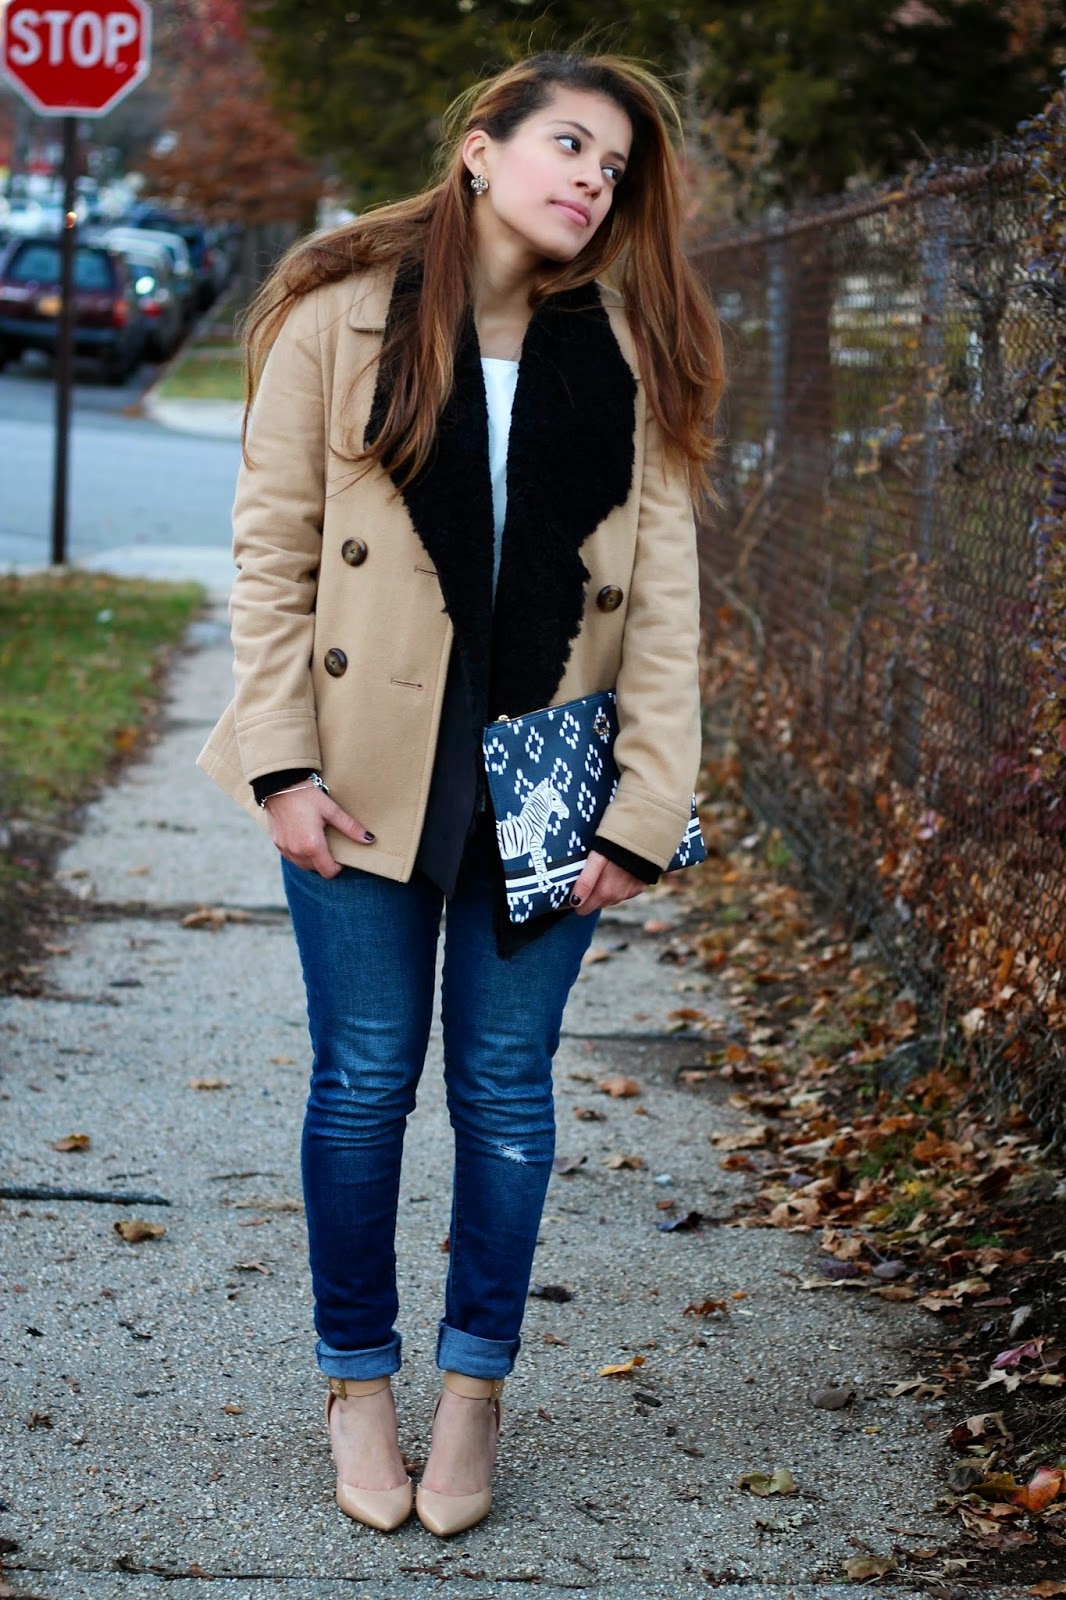 old navy, pea coat, camel, nine west, nude, ankle-strap heels, ankle strap, joan vass, ro and de, distressed, wool, heels, c.wonder, zebra, clutch, pouch, faux fur, sweater, faux fur sweater, faux, outfit of the day, ootd, nordstrom rack, nordstrom, faux leather, leather, jeans, skinny jeans, rockstar,